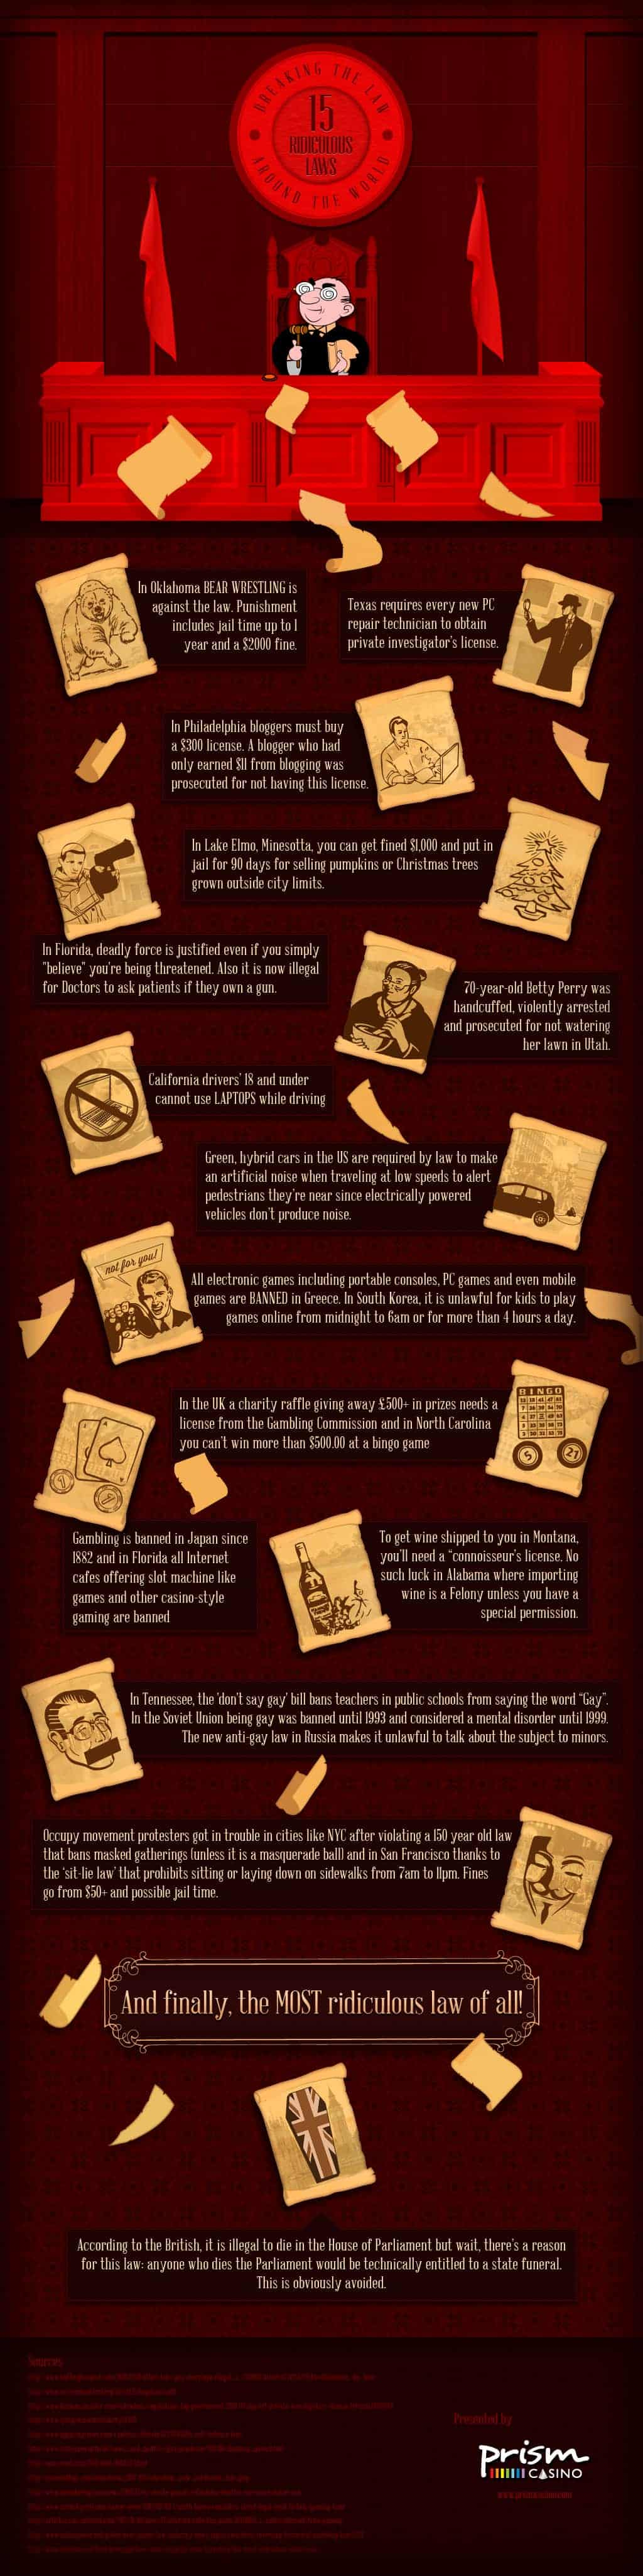 breaking the law daily infographic. Black Bedroom Furniture Sets. Home Design Ideas